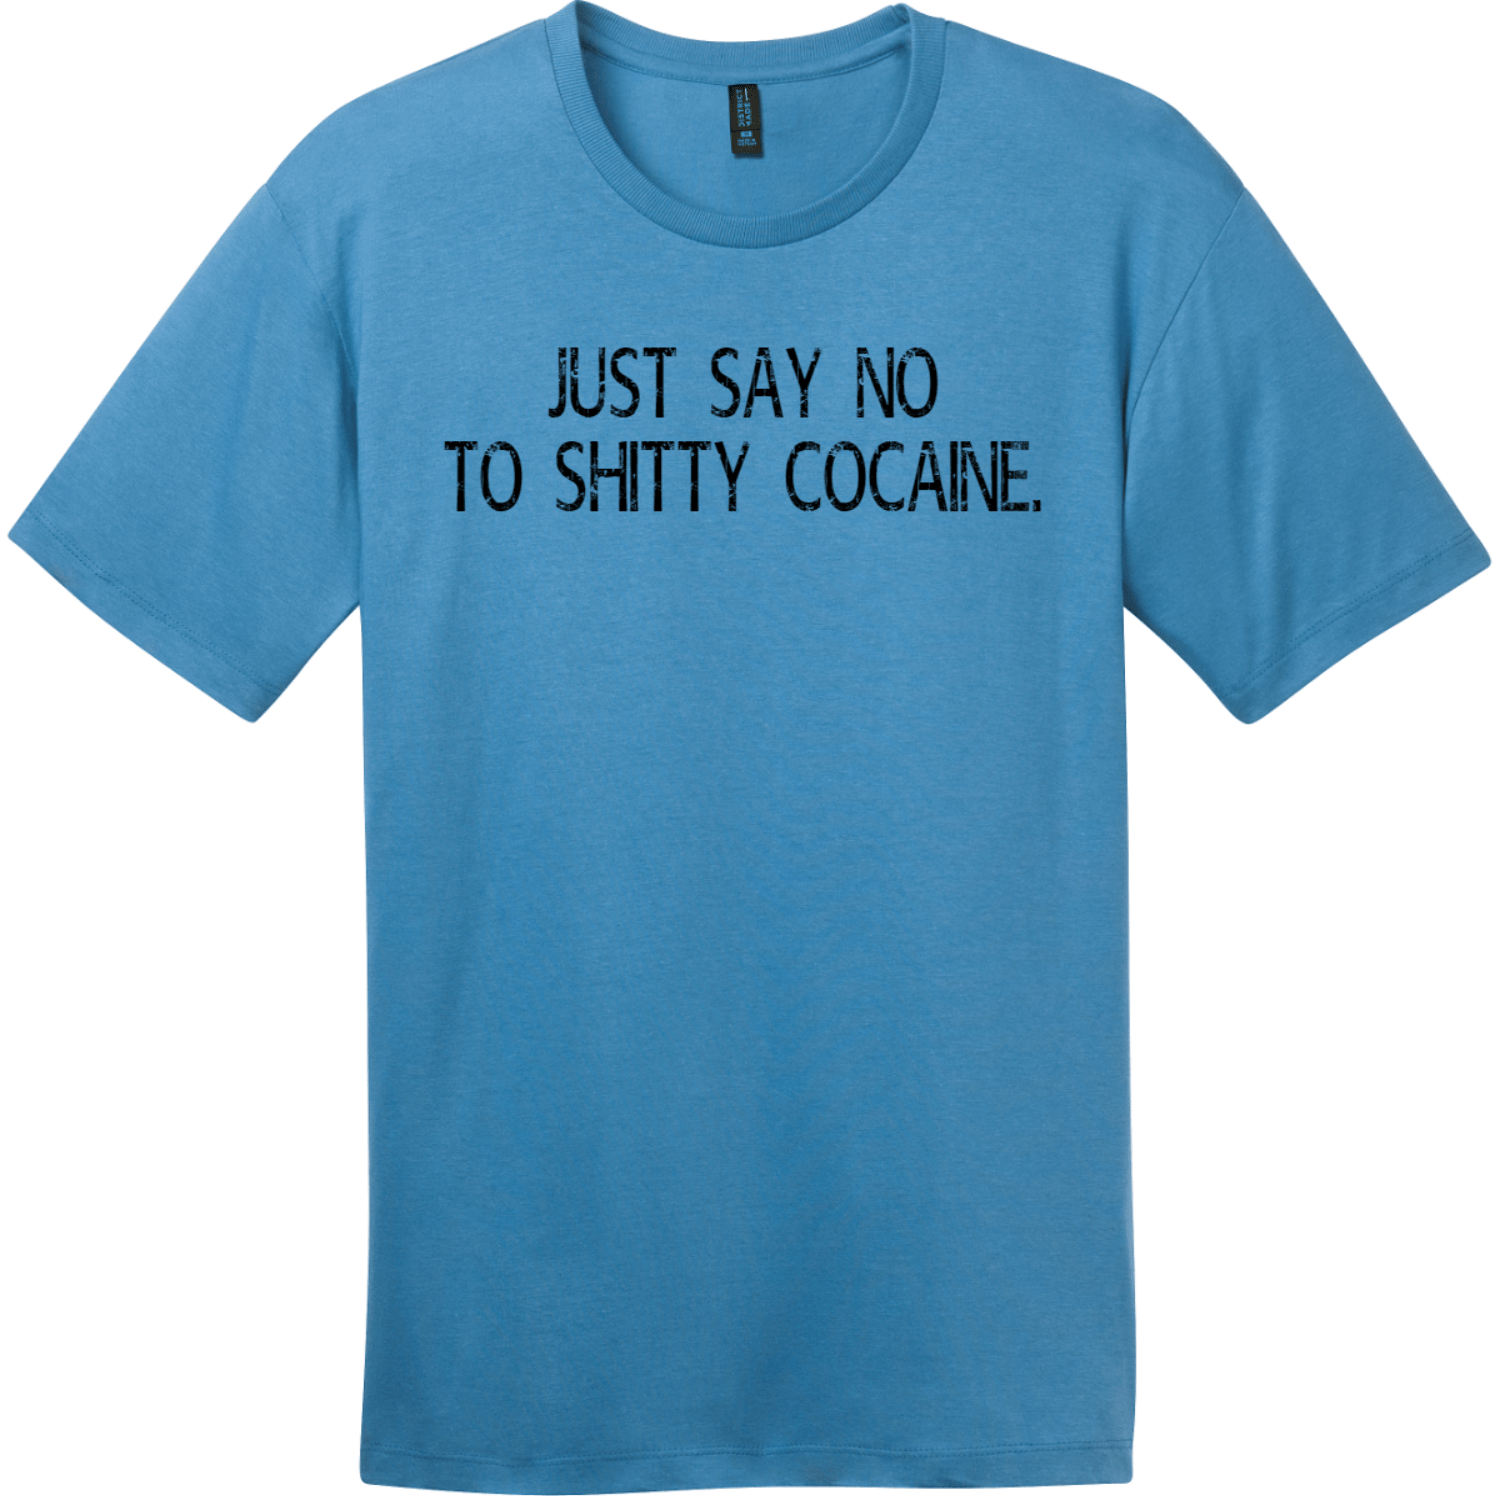 Just Say No To Shitty Cocaine T-Shirt Clean Denim District Perfect Weight Tee DT104